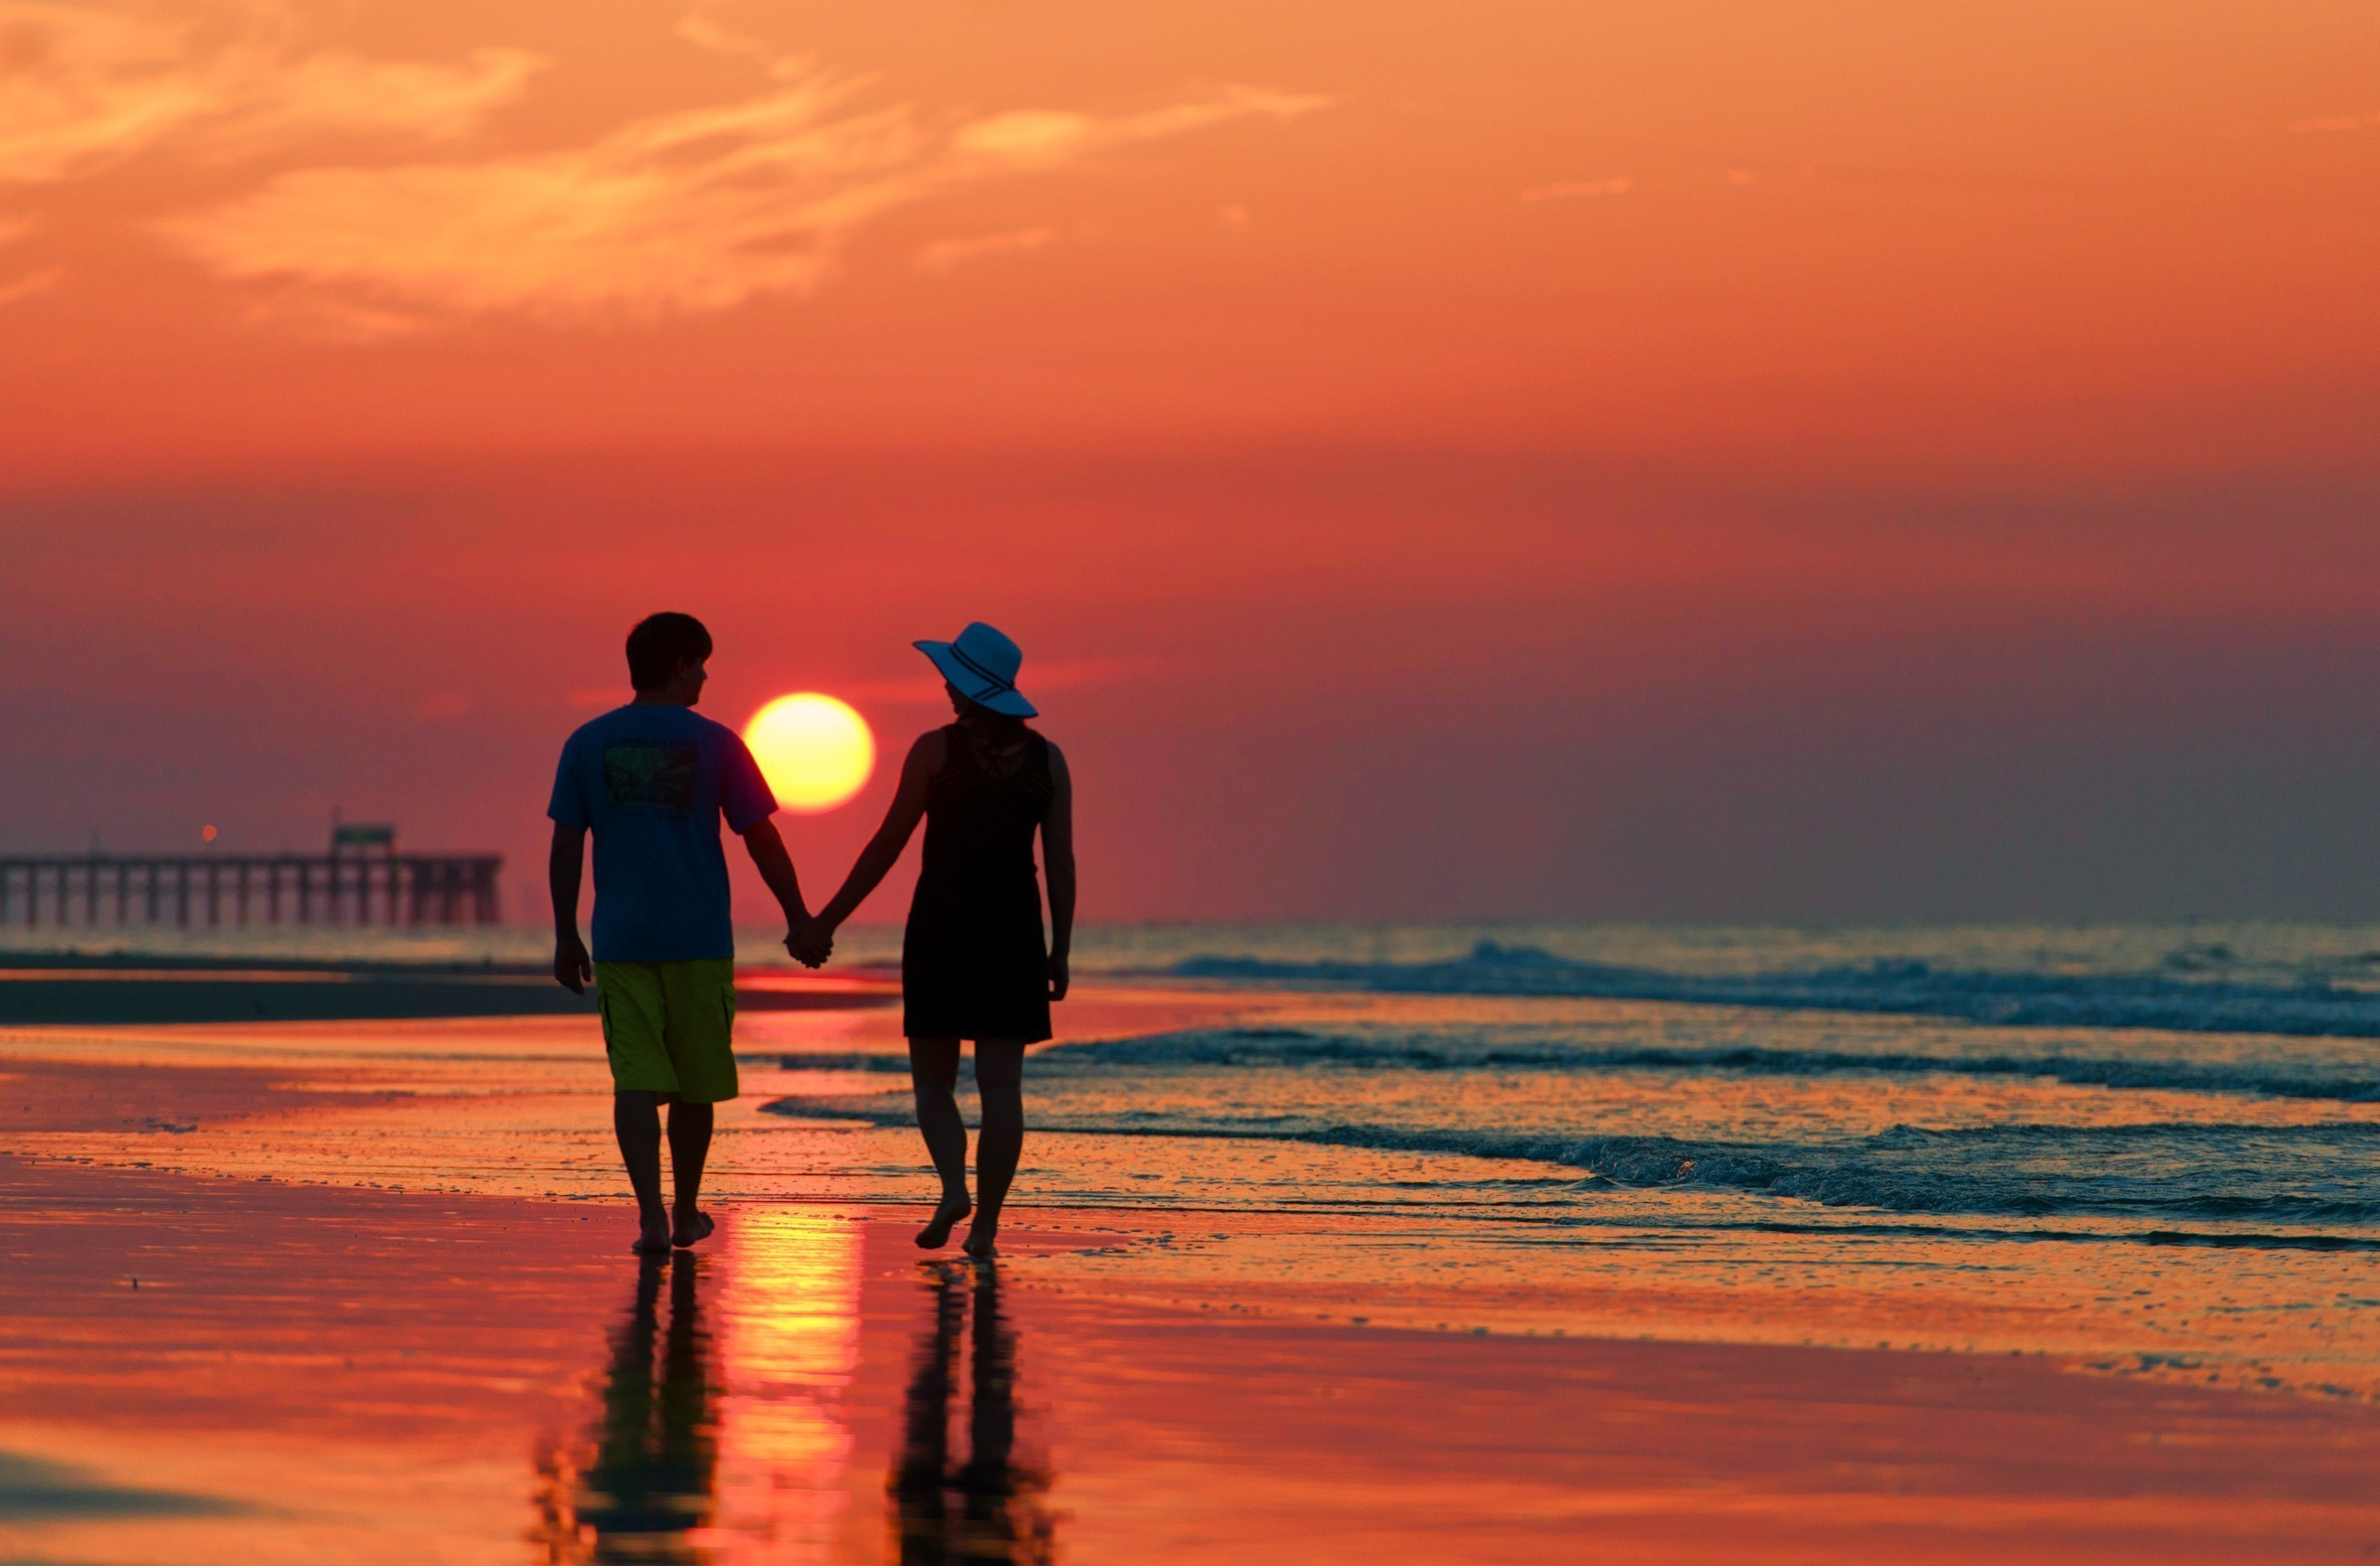 Myrtle Beach Invites Visitors to Relax and Unwind During 60 More Days of Summer